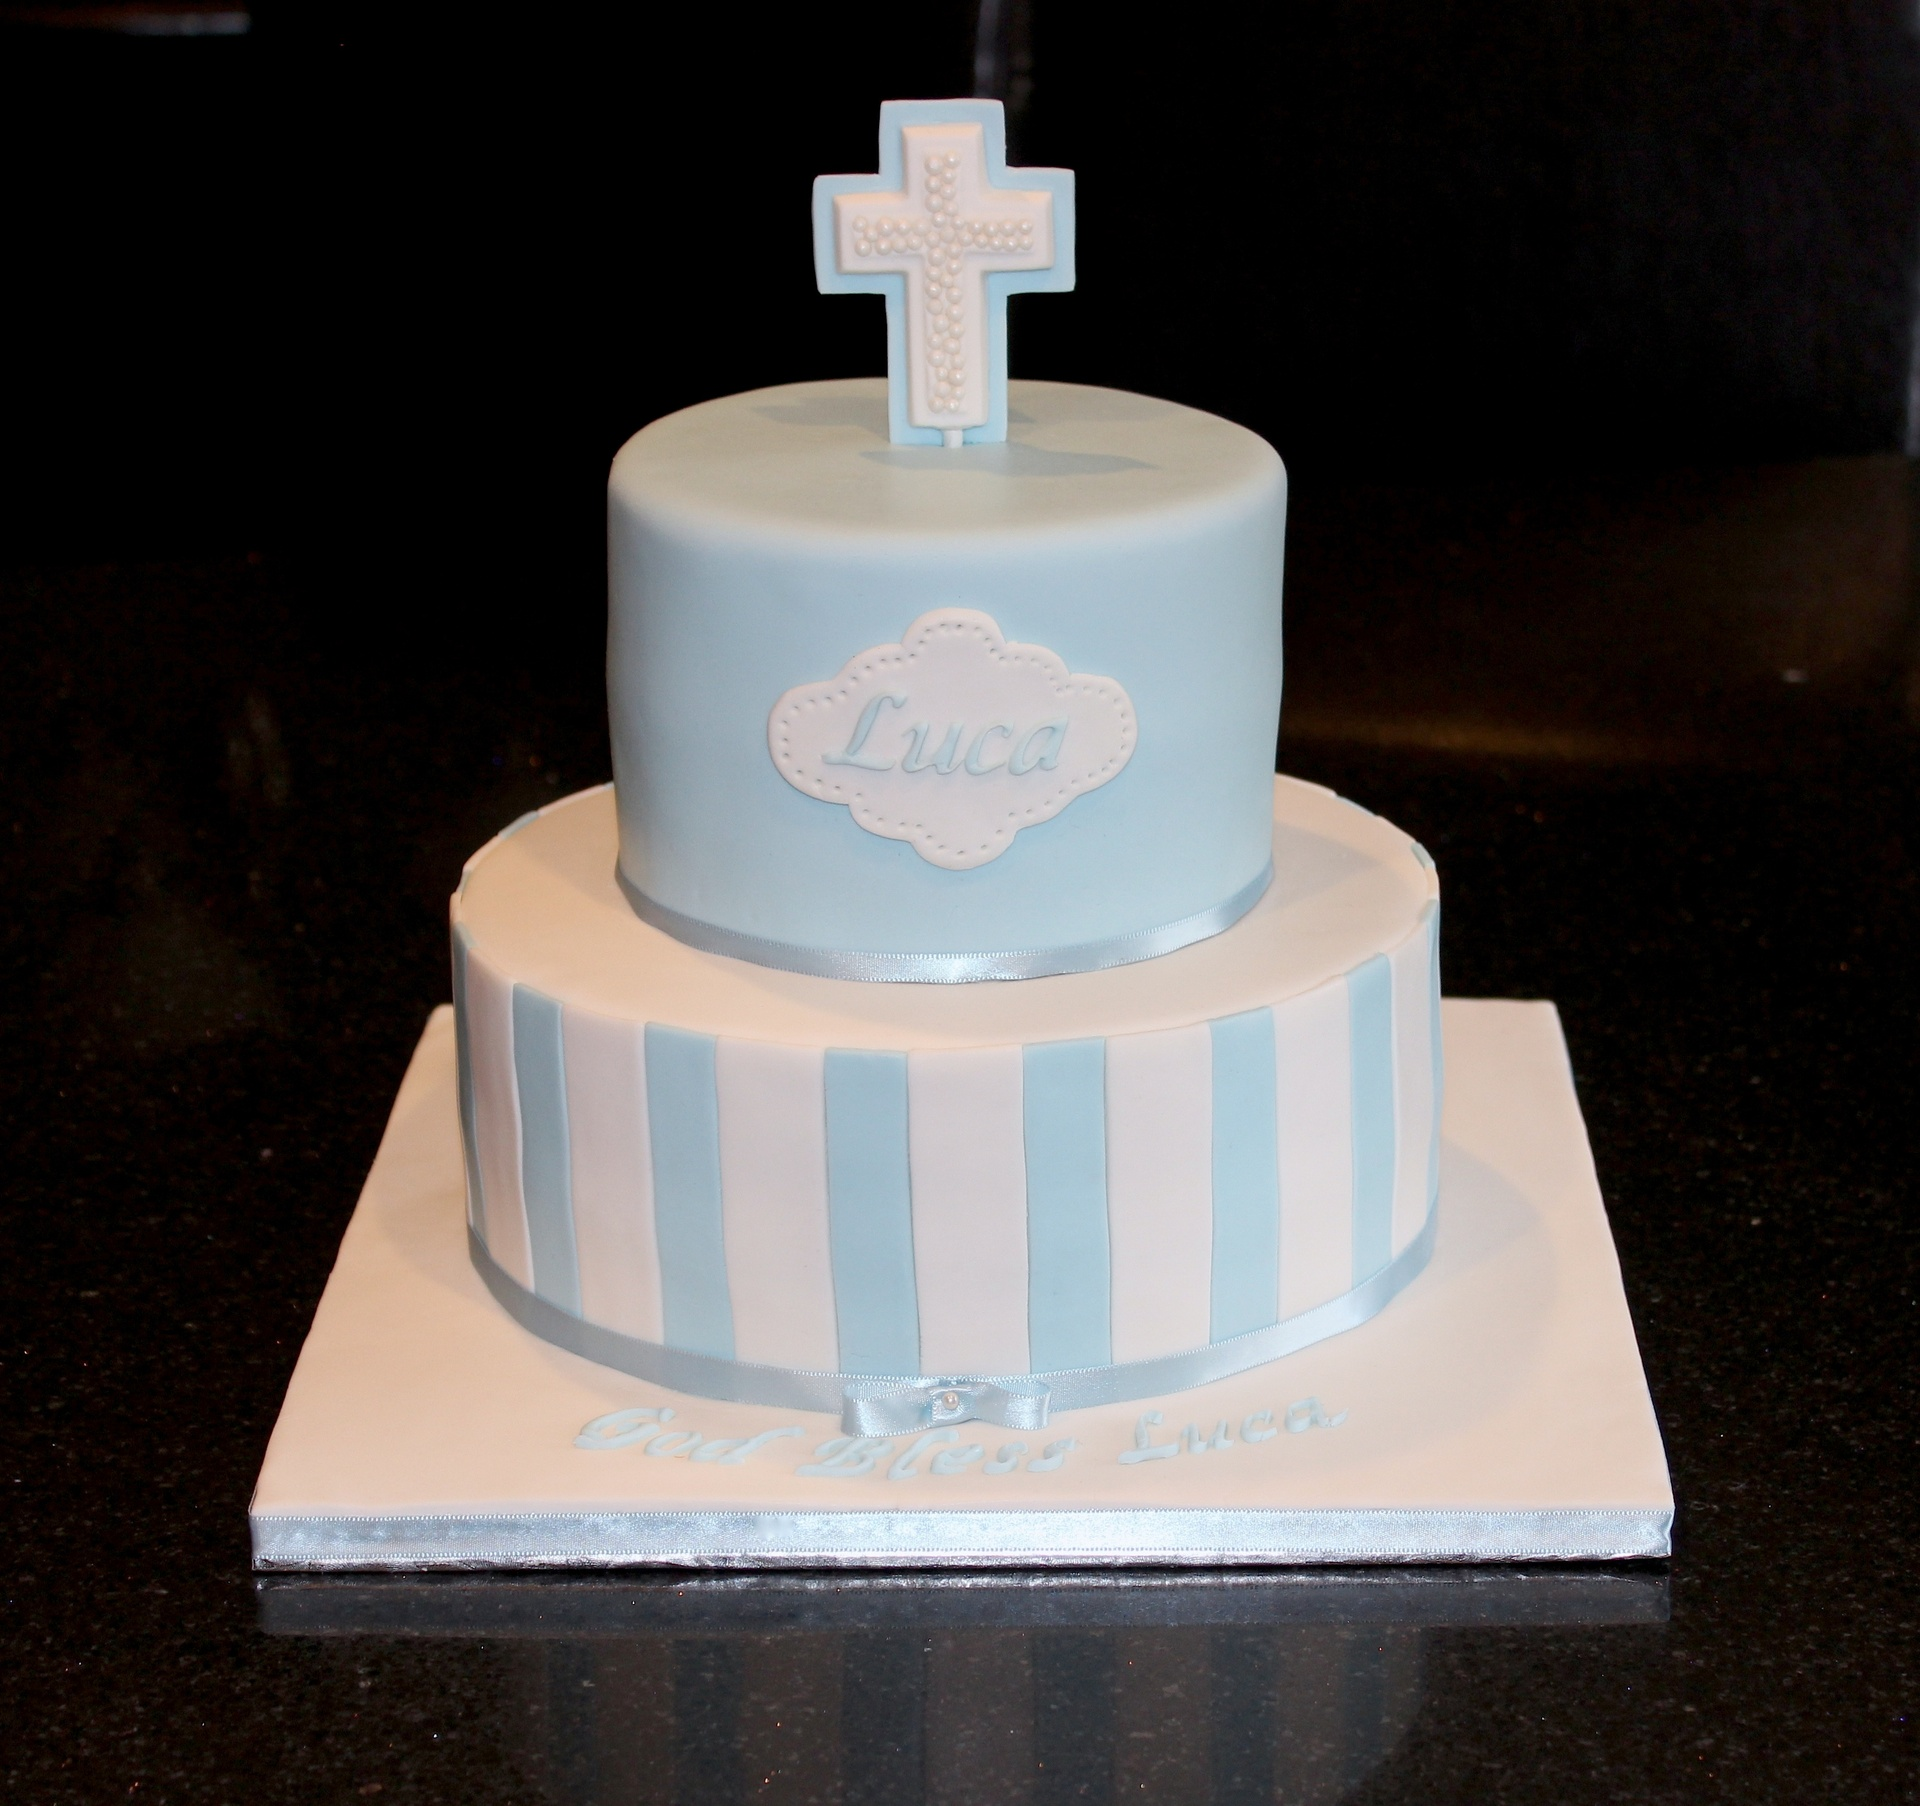 Baptism Cake for Luca